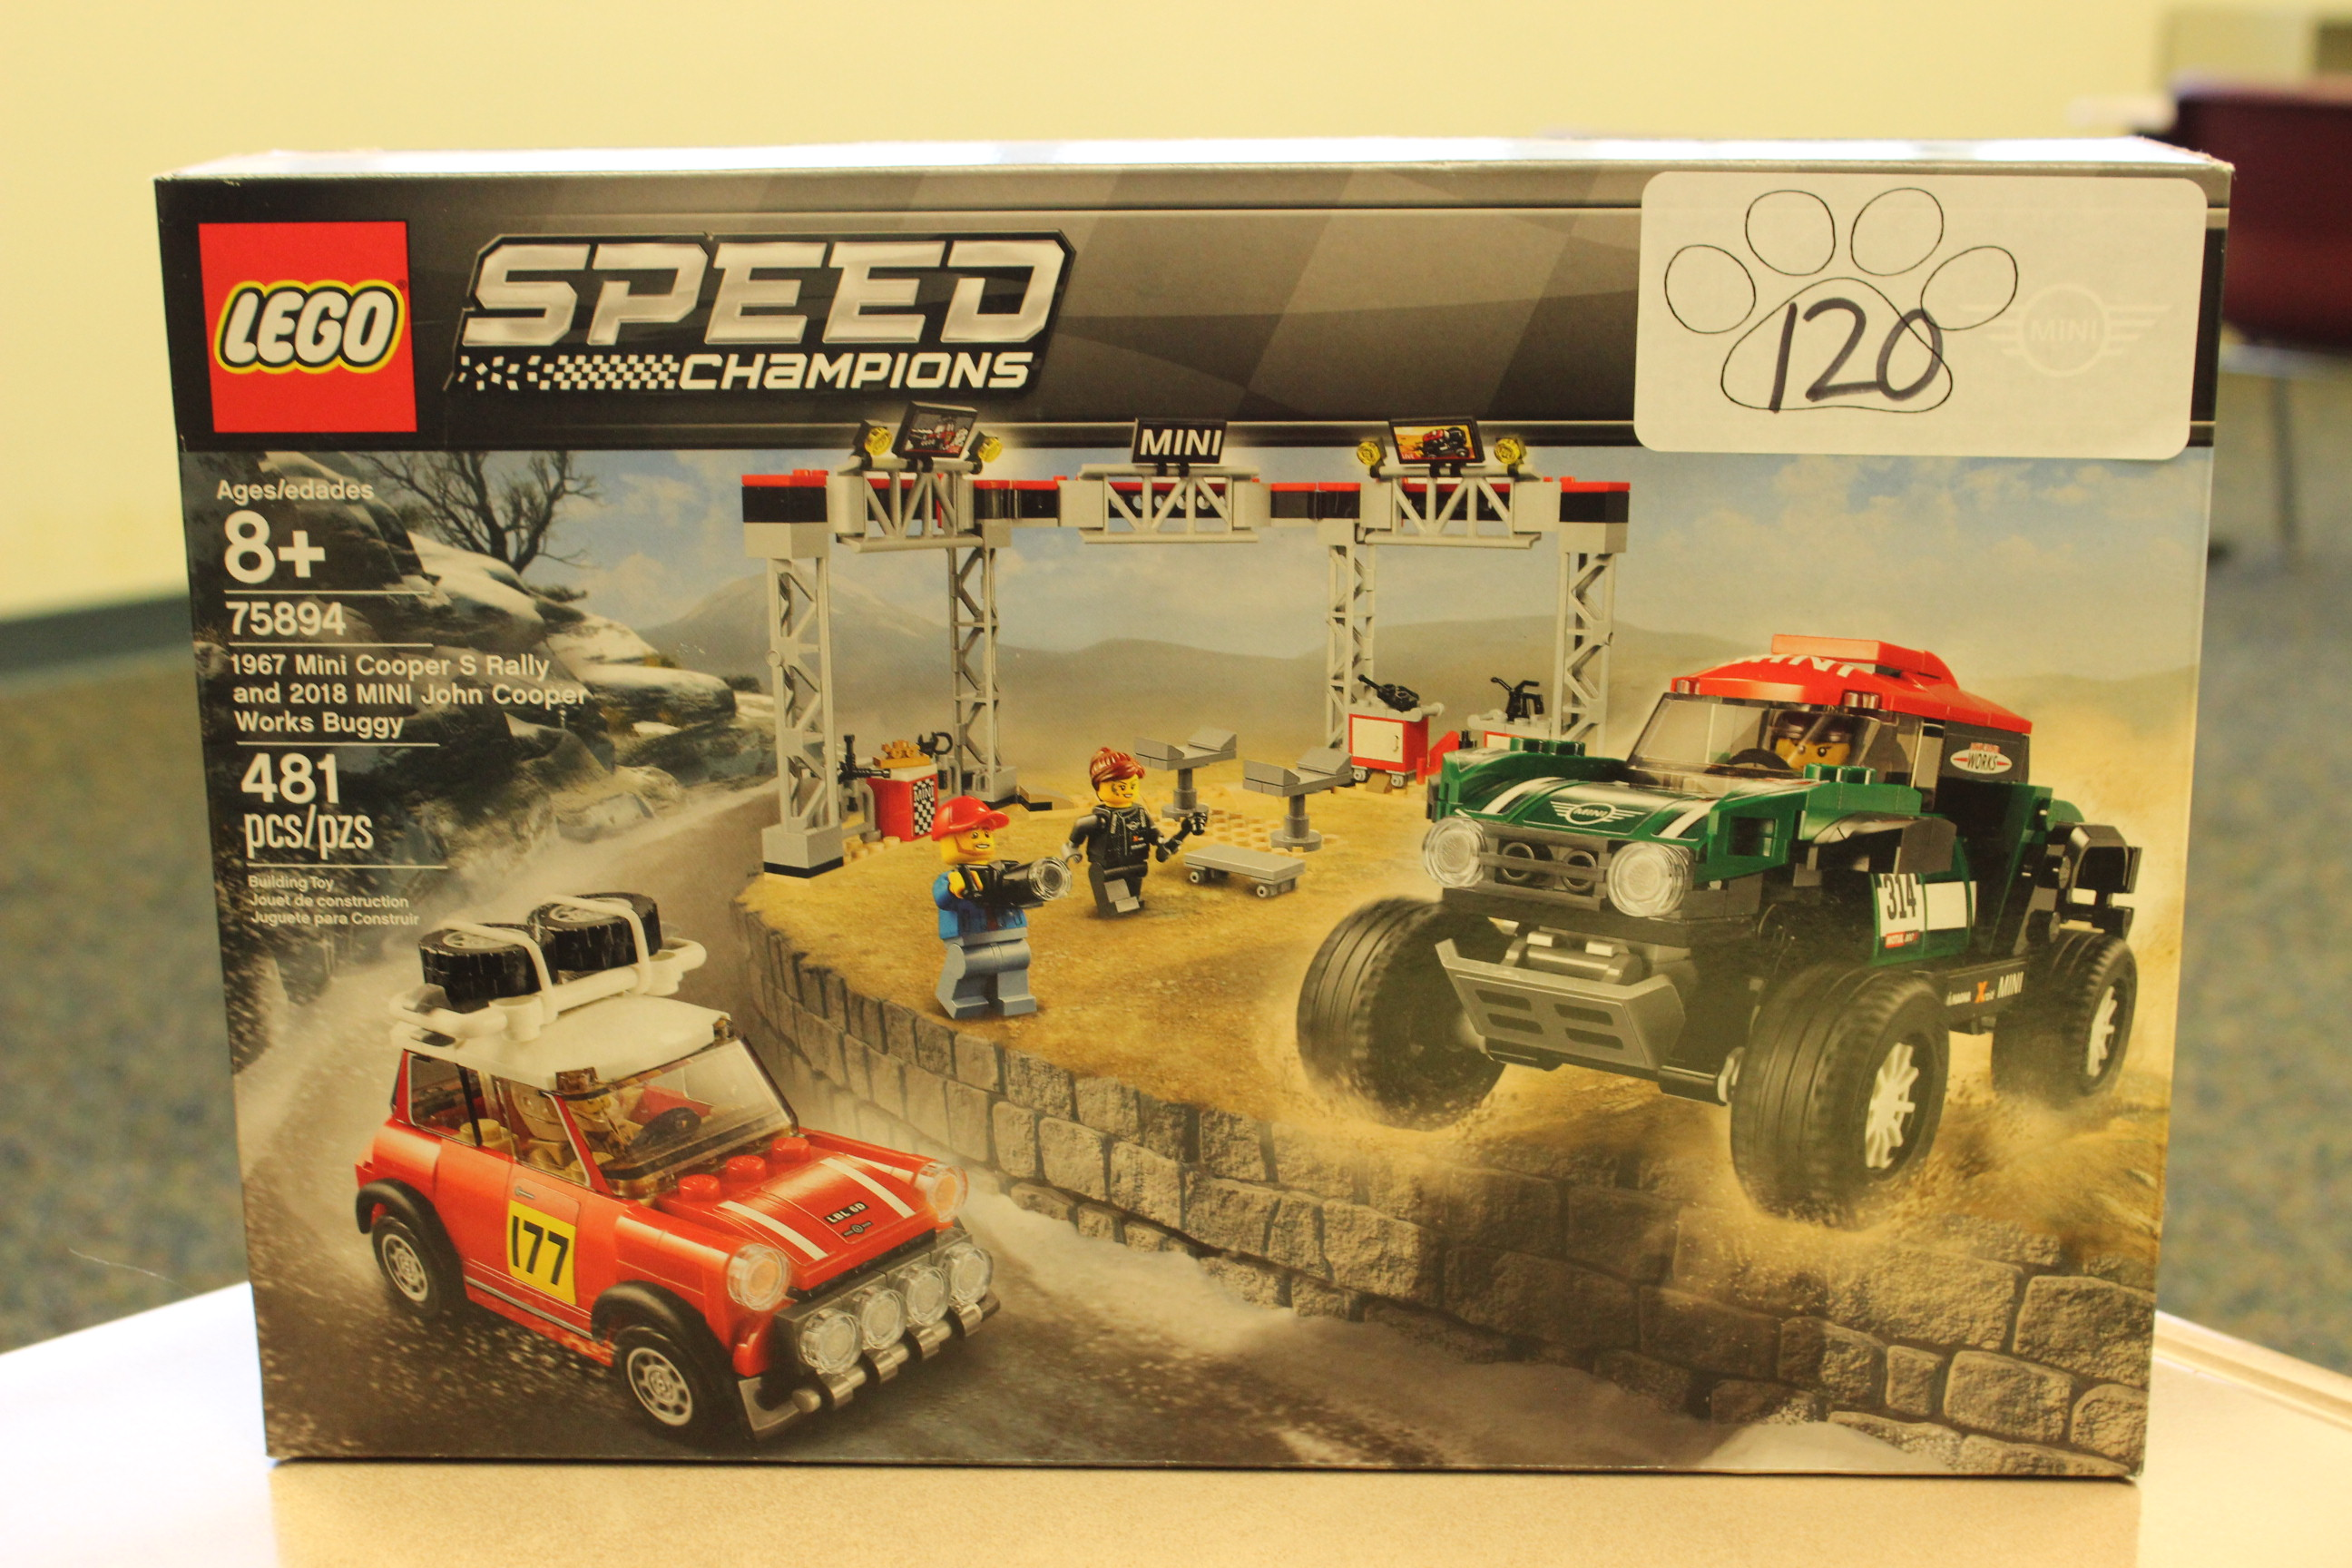 120 Paws Lego Speed Champions